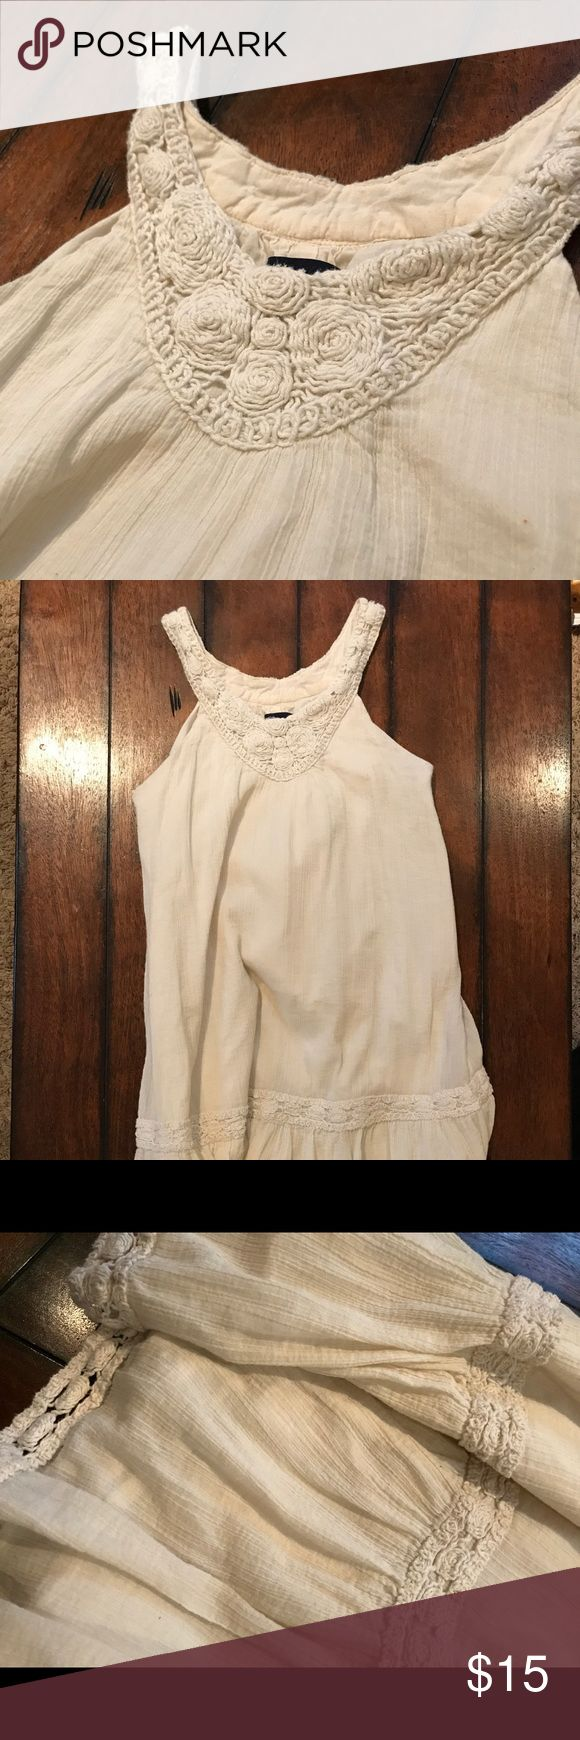 GAP kids Gauze/crochet dress Beautiful gauzy dress for girls. Would be so cute in fall with cardigan and boots! Crochet detailing and side zipper. Size 10 GAP Dresses Casual